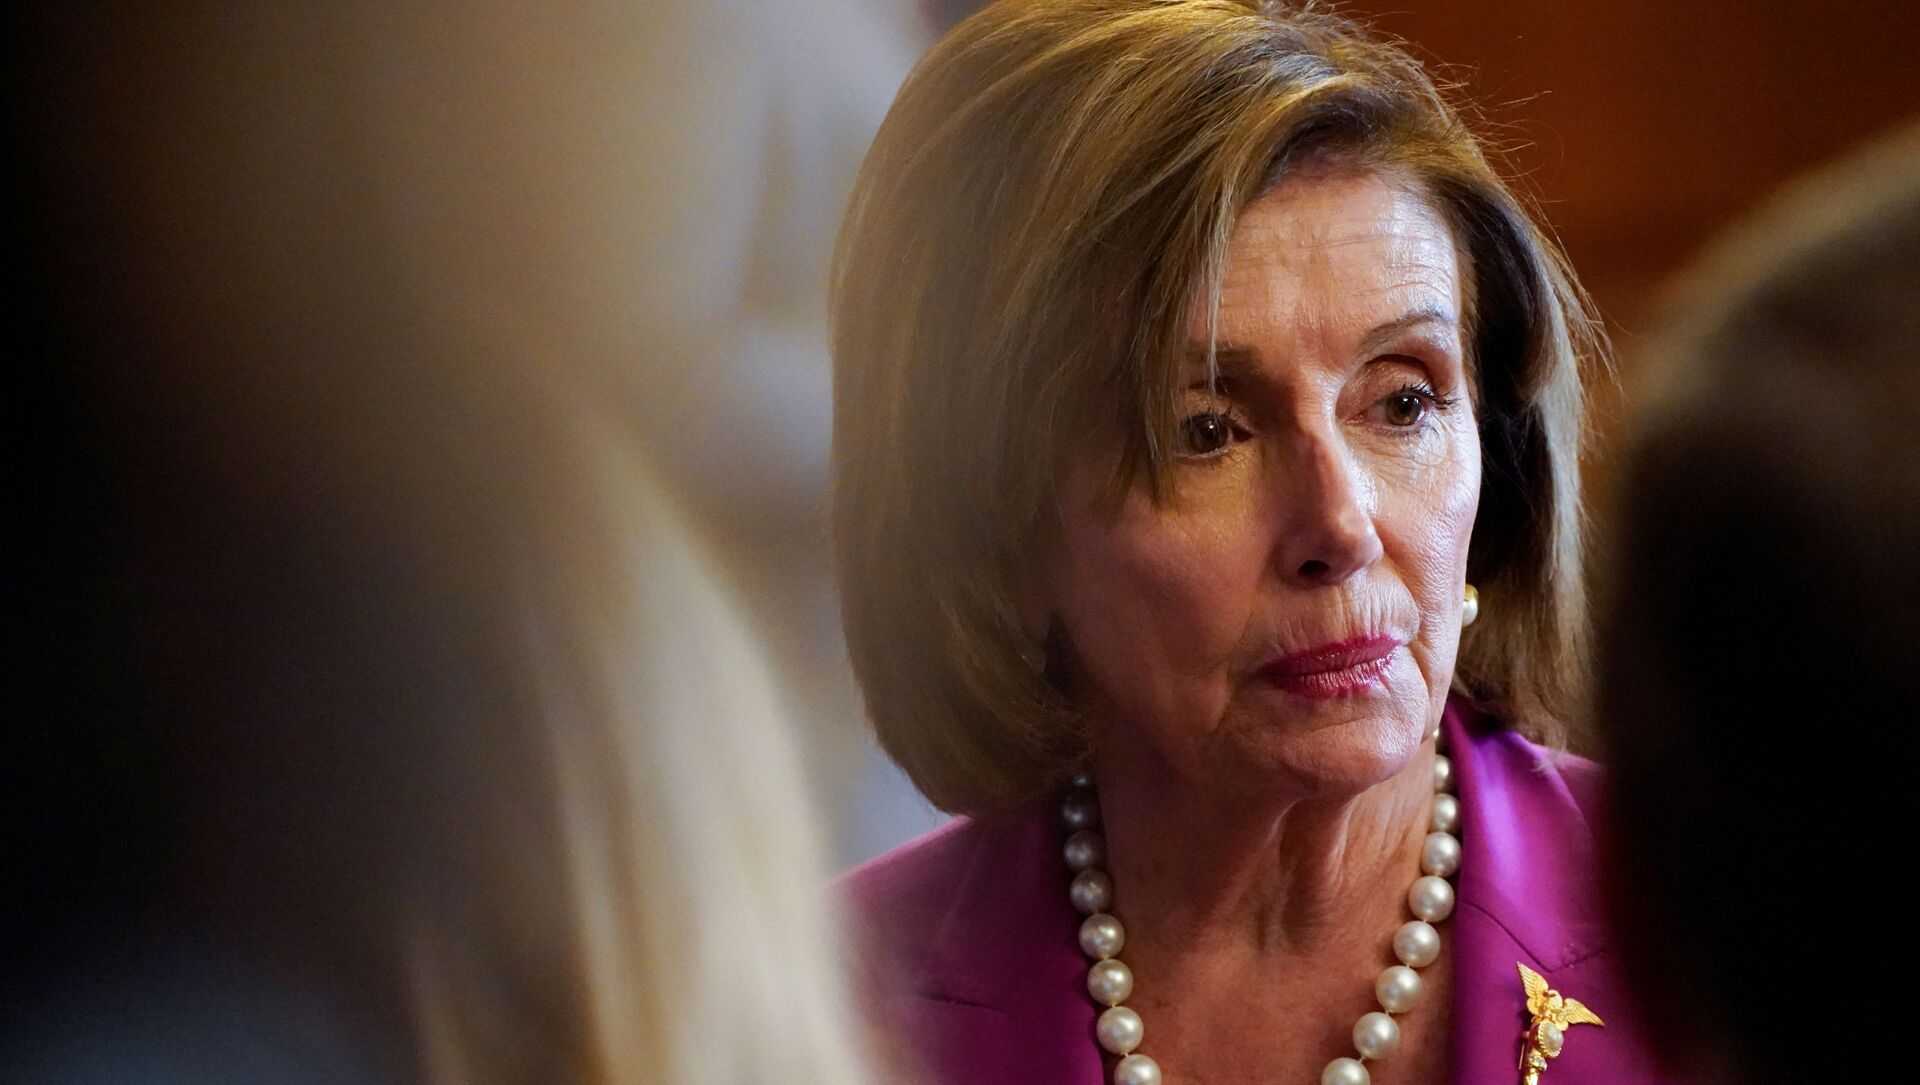 U.S. House Speaker Nancy Pelosi takes part in an enrollment ceremony for the 'VOCA Fix to Sustain the Crime Victims Fund Act of 2021' on Capitol Hill in Washington, U.S., July 21, 2021 - Sputnik International, 1920, 30.07.2021